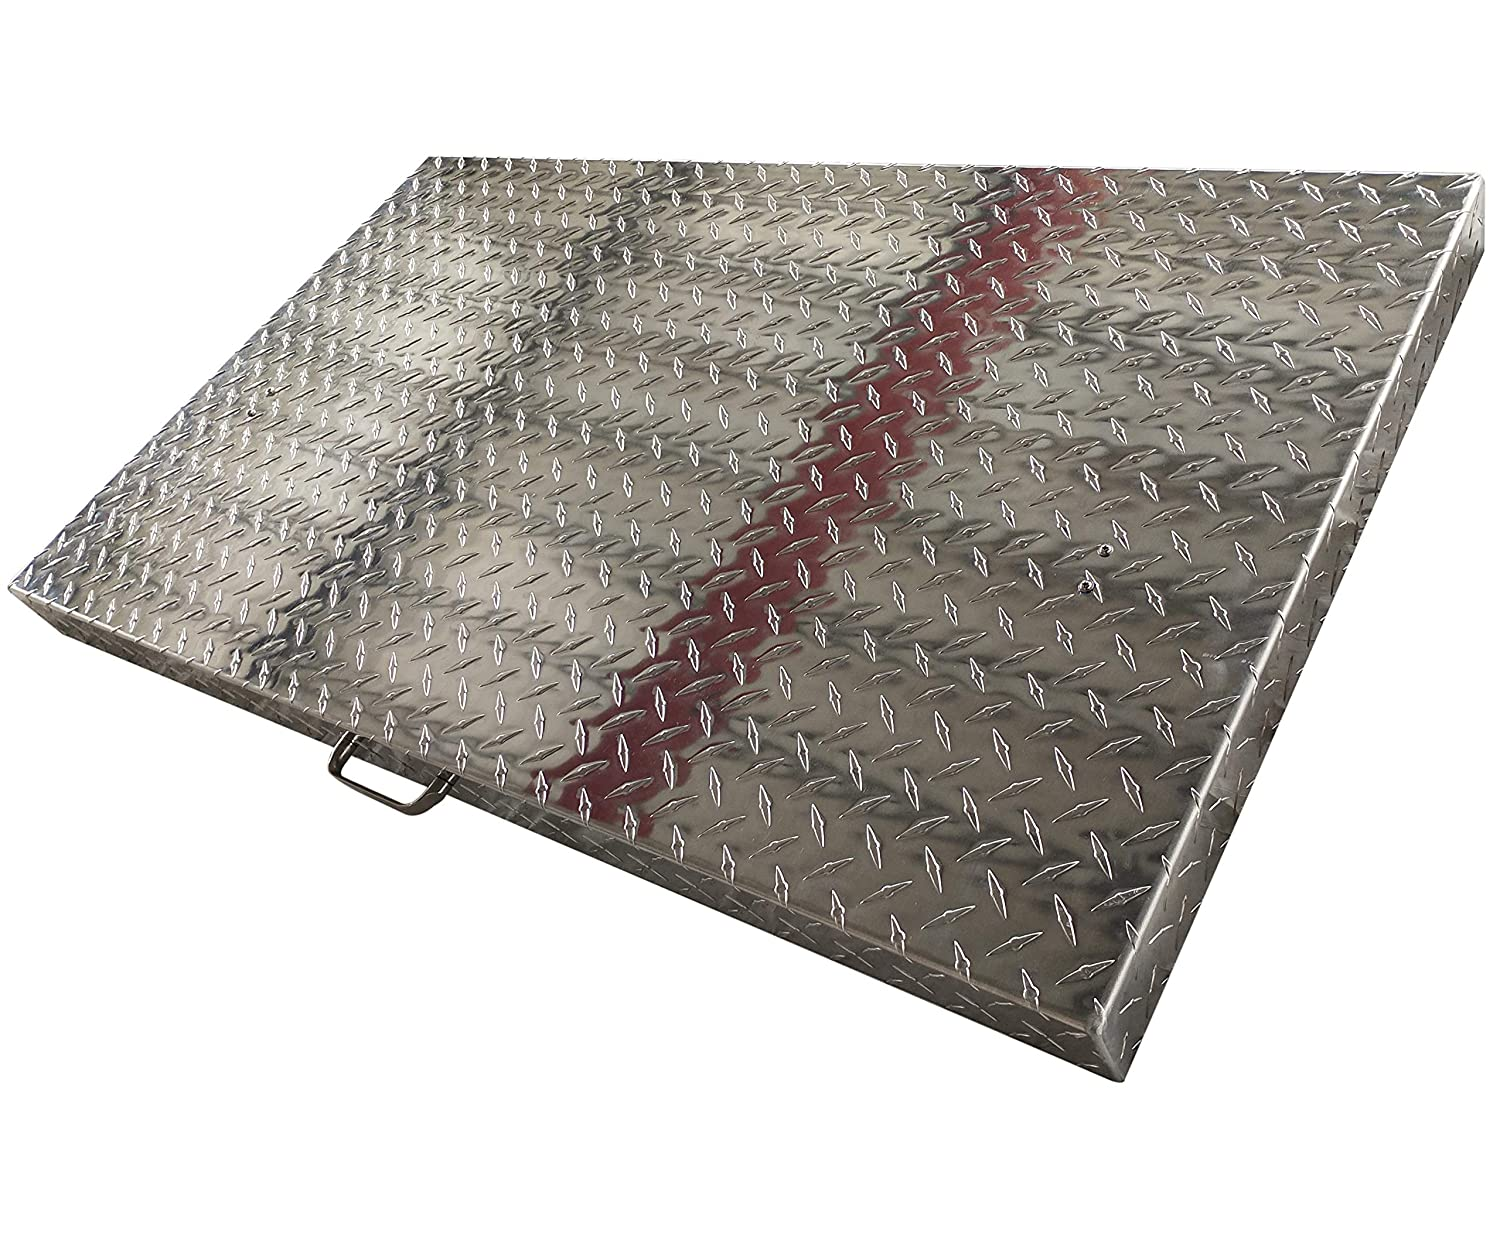 Griddle Cover 36 Inch: for Blackstone Griddle, Blackstone Griddle Cover Accessories, Flat Top Griddle/Grill Cover, Great for Outdoors, use as Tabletop, Diamond Plate Aluminum